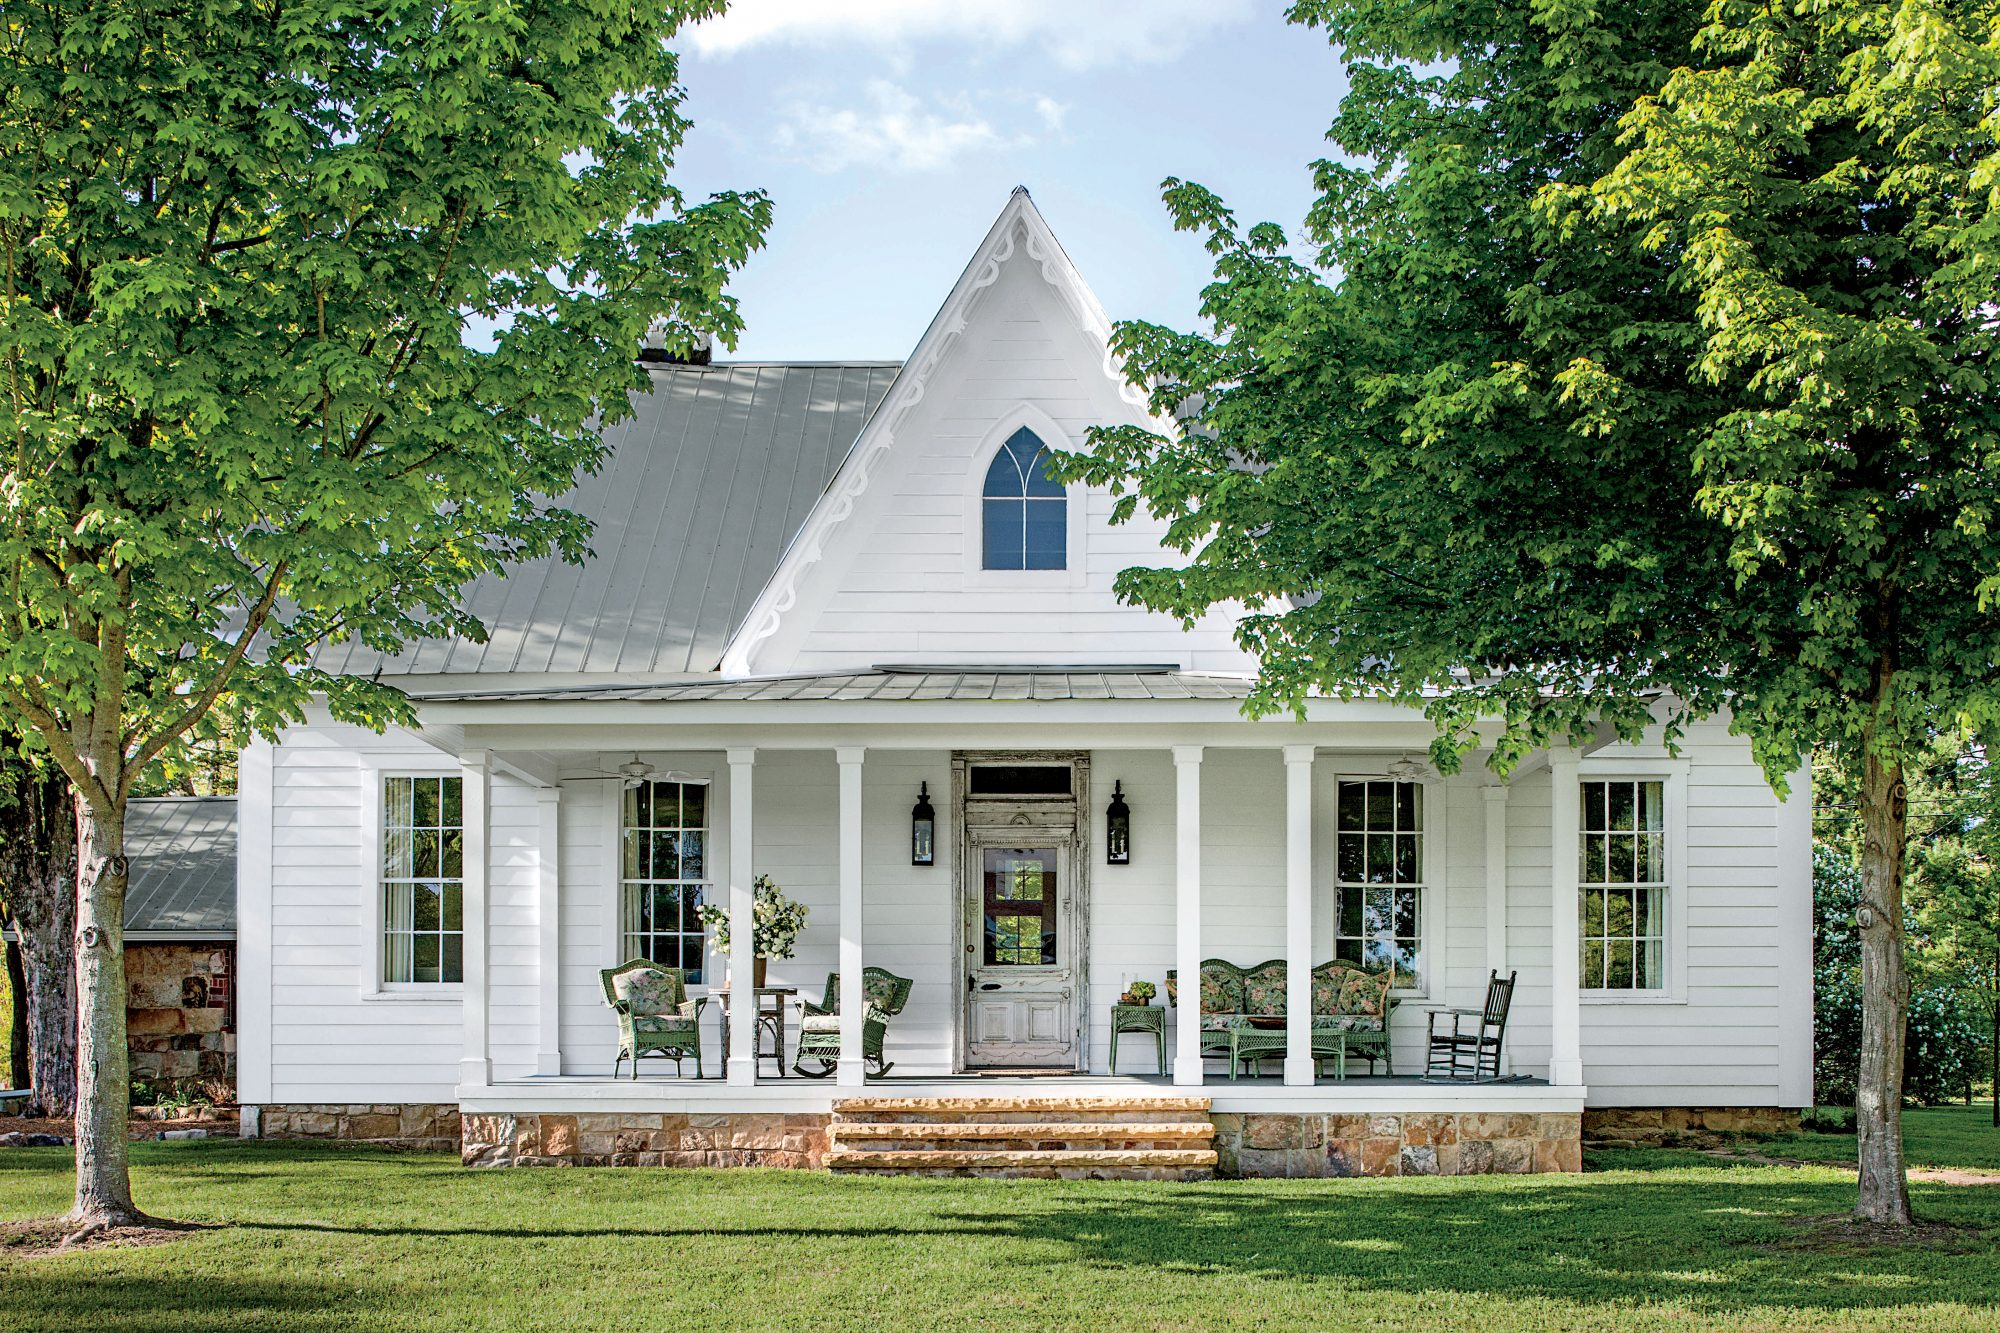 The Top Cities For Farmhouse-Style Inspiration, According